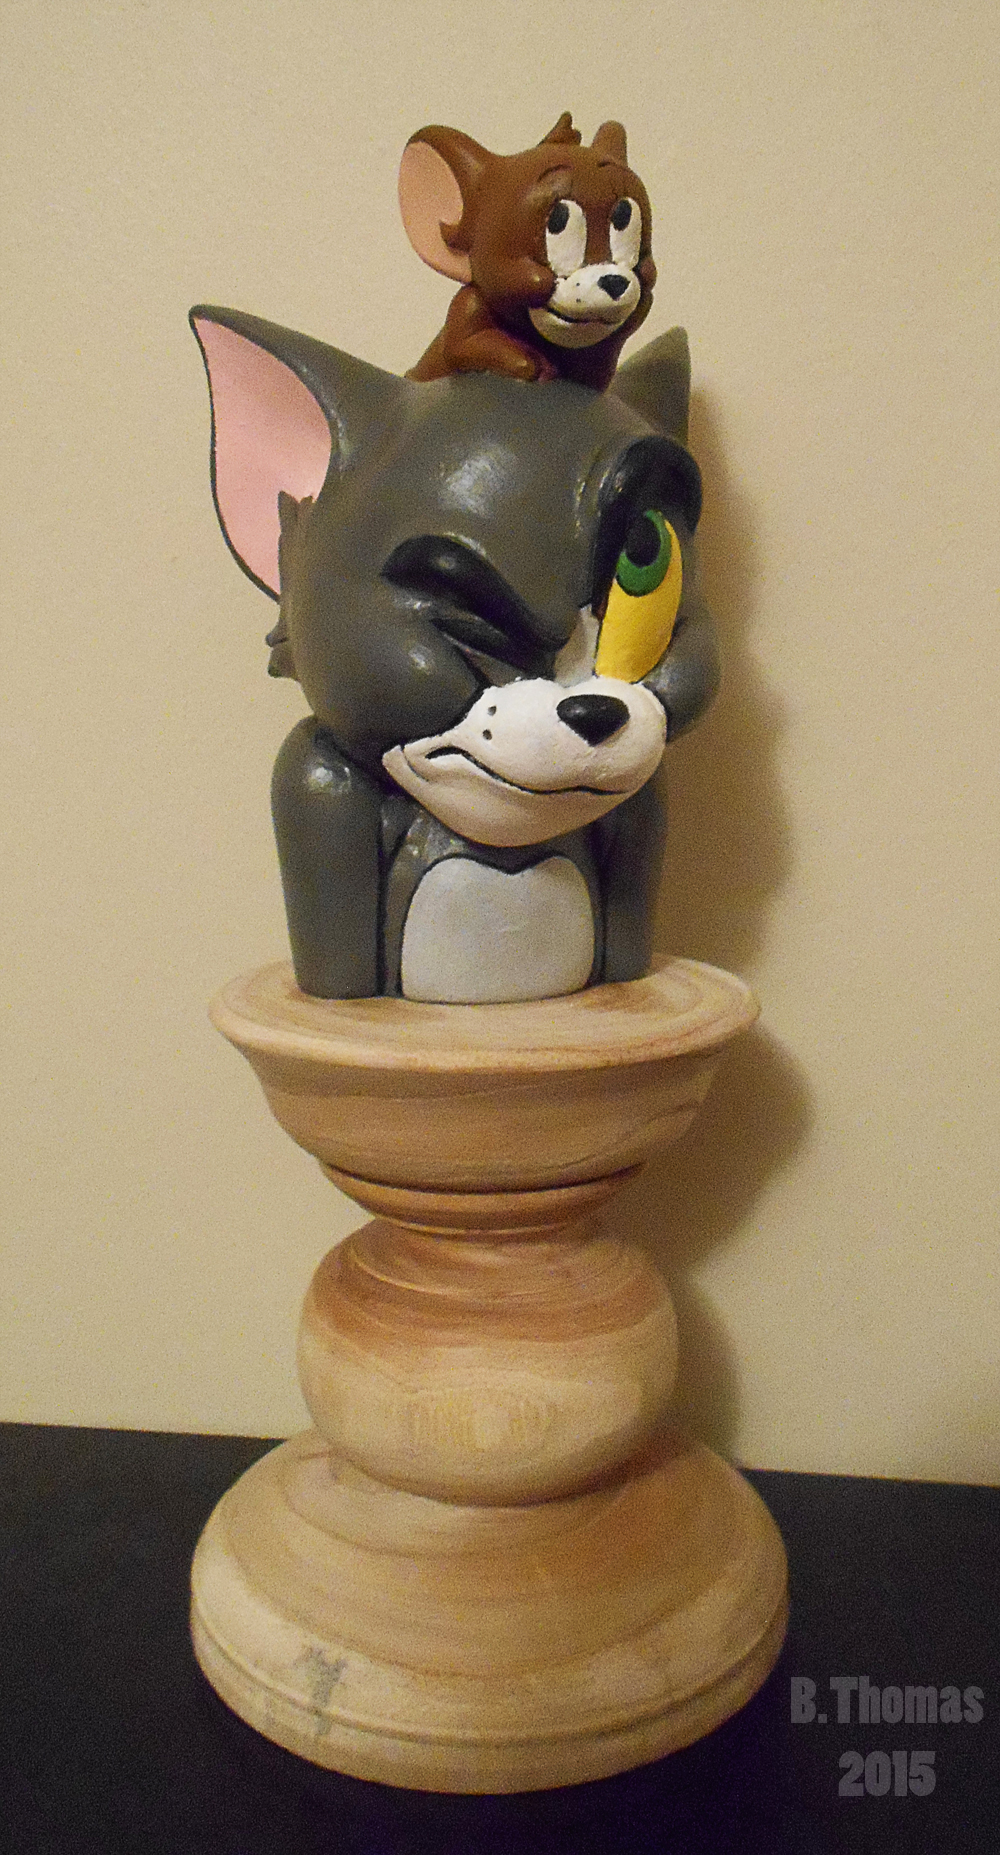 Another Tom & Jerry Sculpture